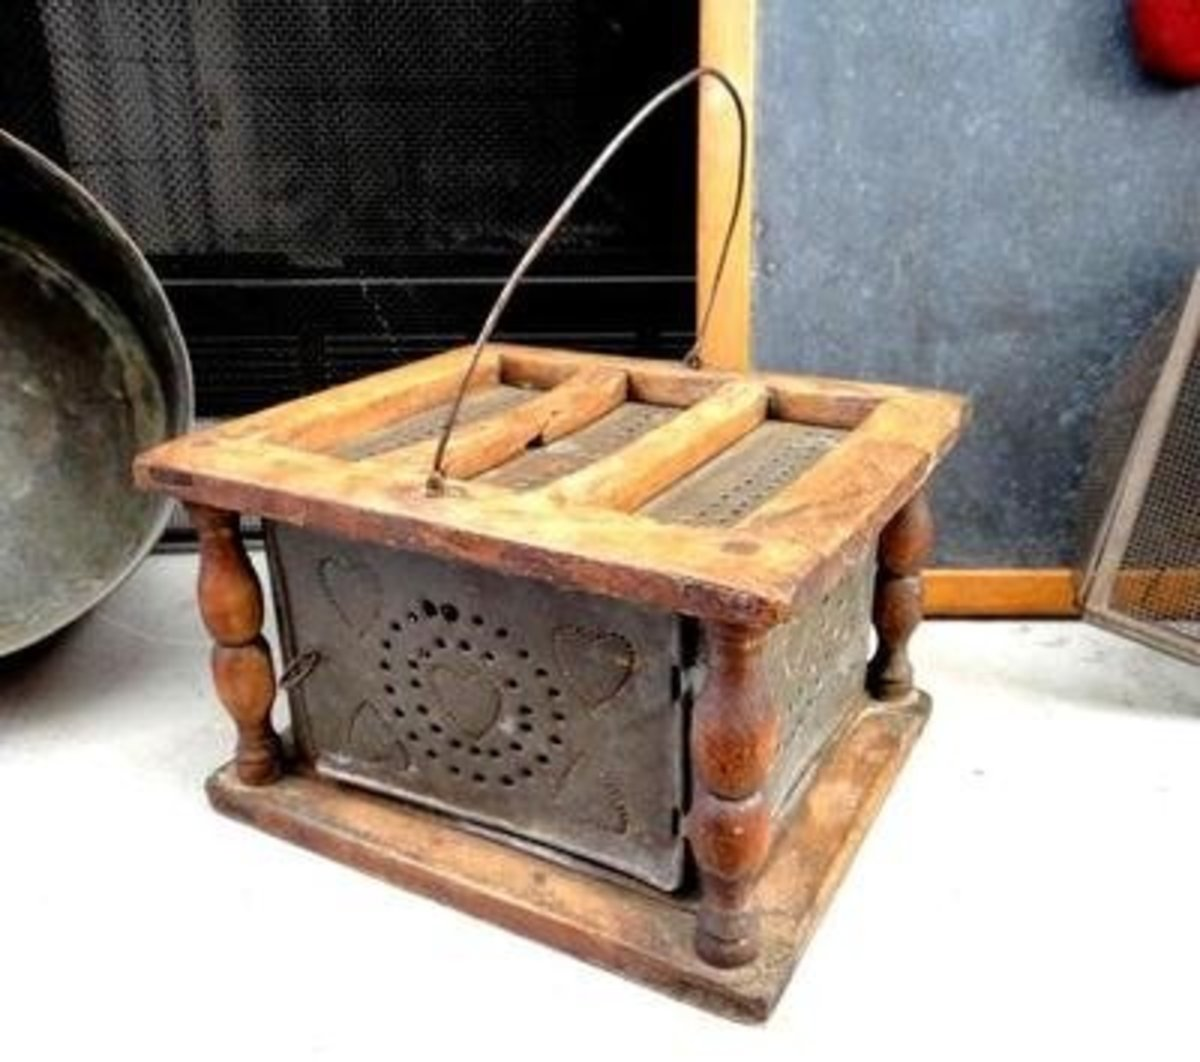 Another style of antique foot-warmer